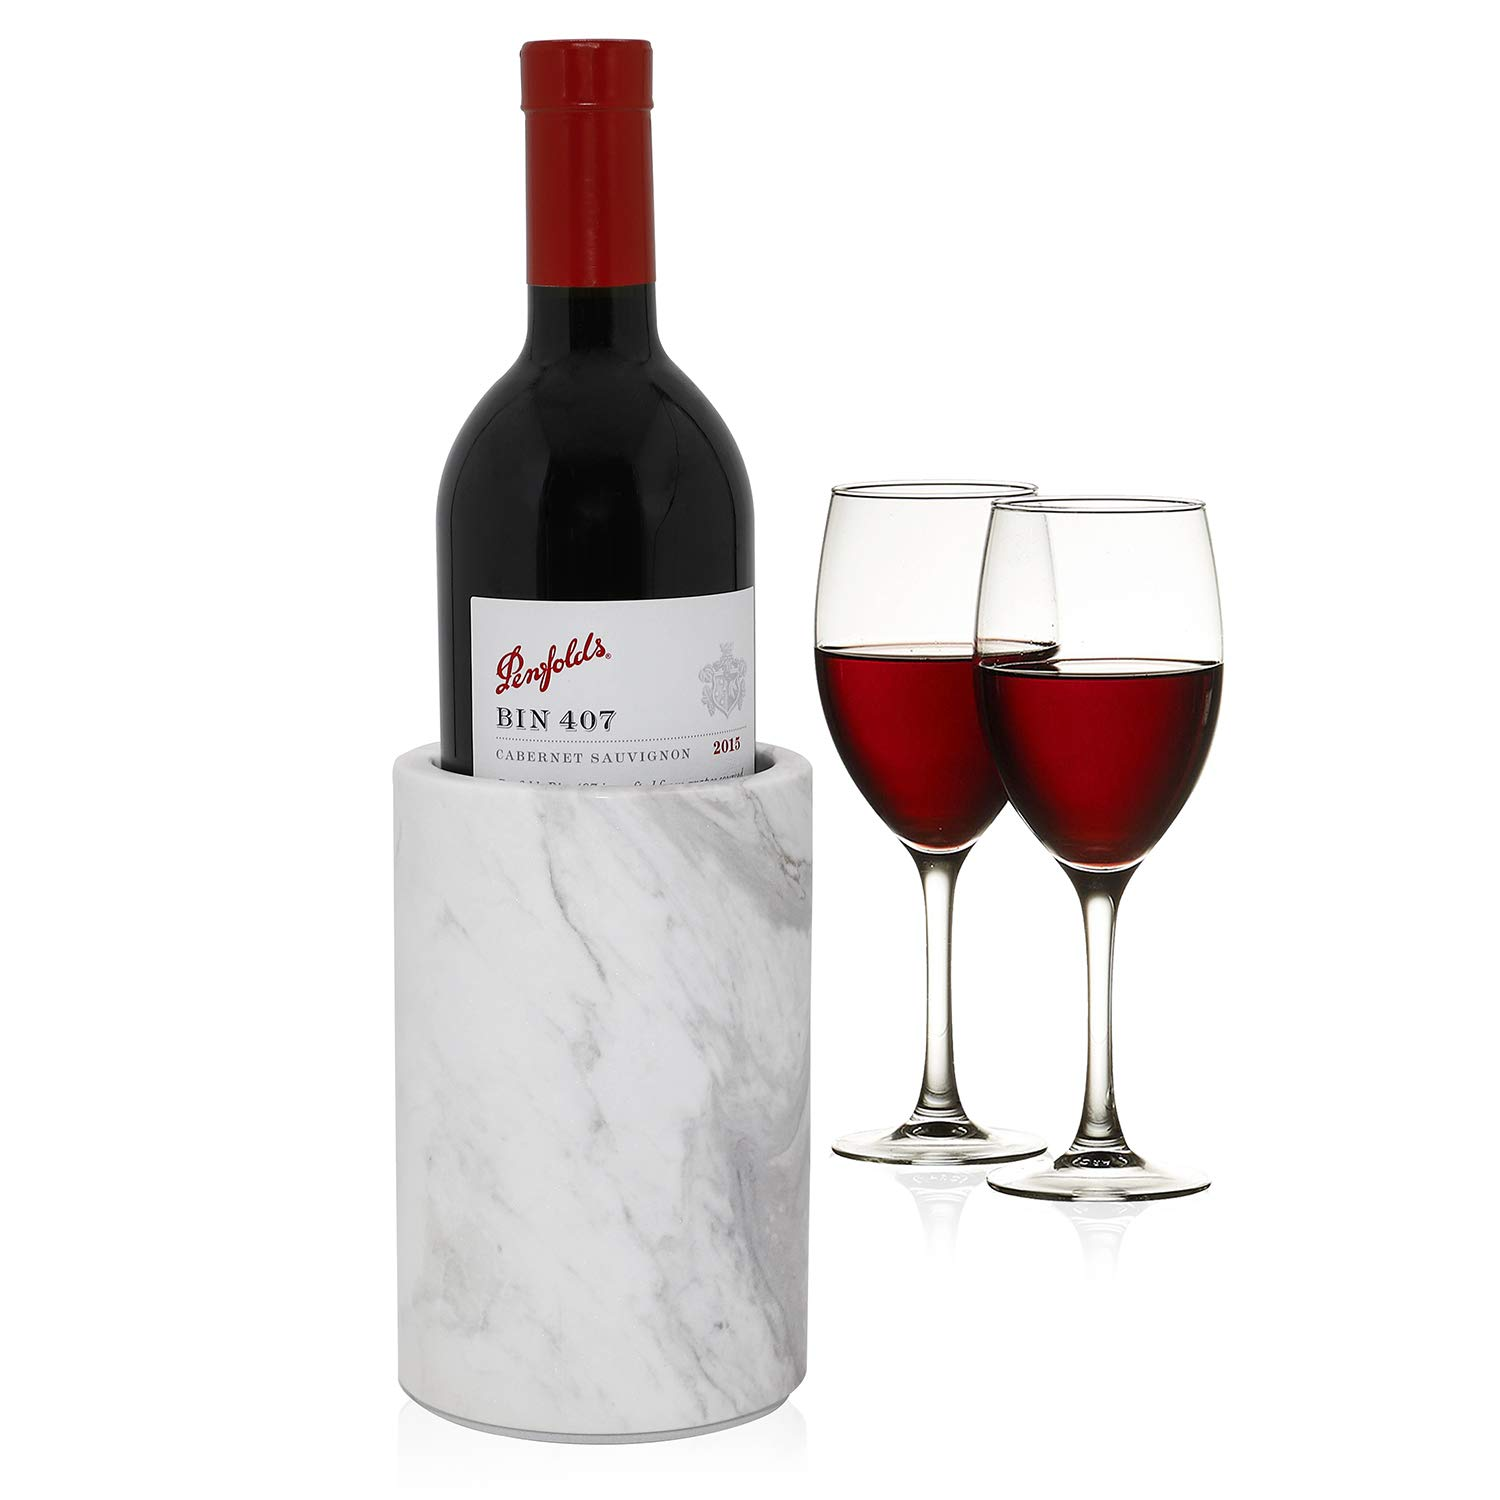 ChasBete Natural Marble Wine Chiller Bottle Holder for Wine Cooler to Keep Champagne Cold Also Use as Kitchen Utensil Holder/Decorative Vase by ChasBete (Image #1)